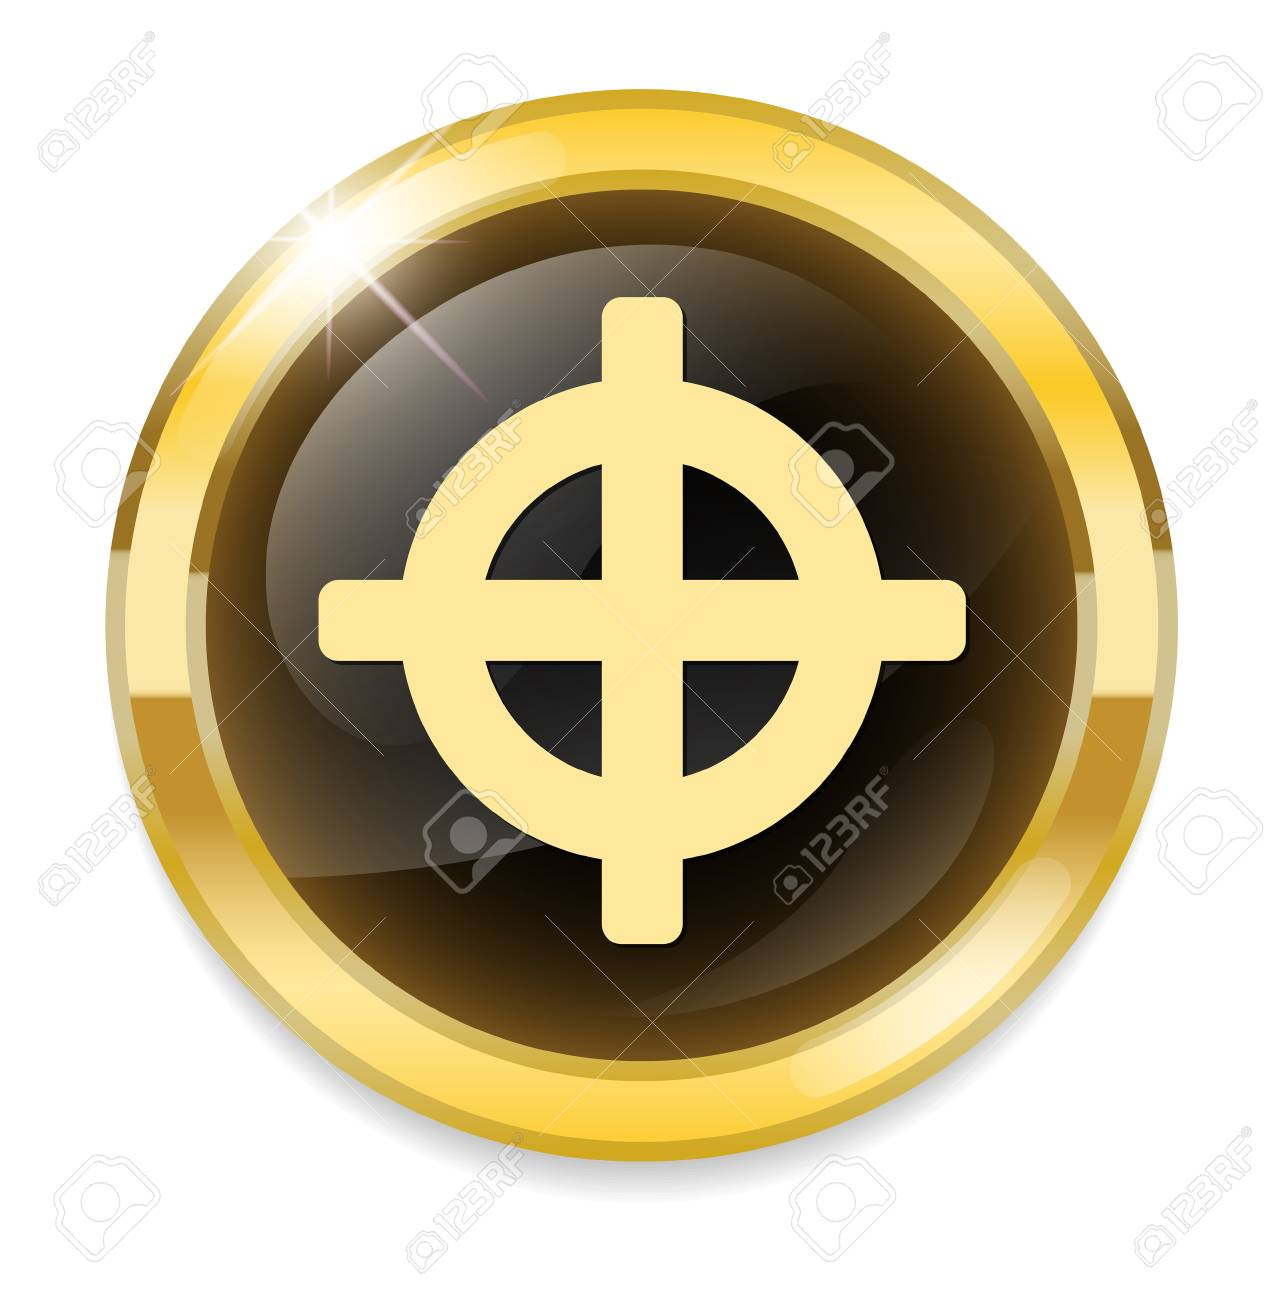 Crosshair sign icon target aim symbol royalty free cliparts target aim symbol stock vector 32360725 buycottarizona Image collections